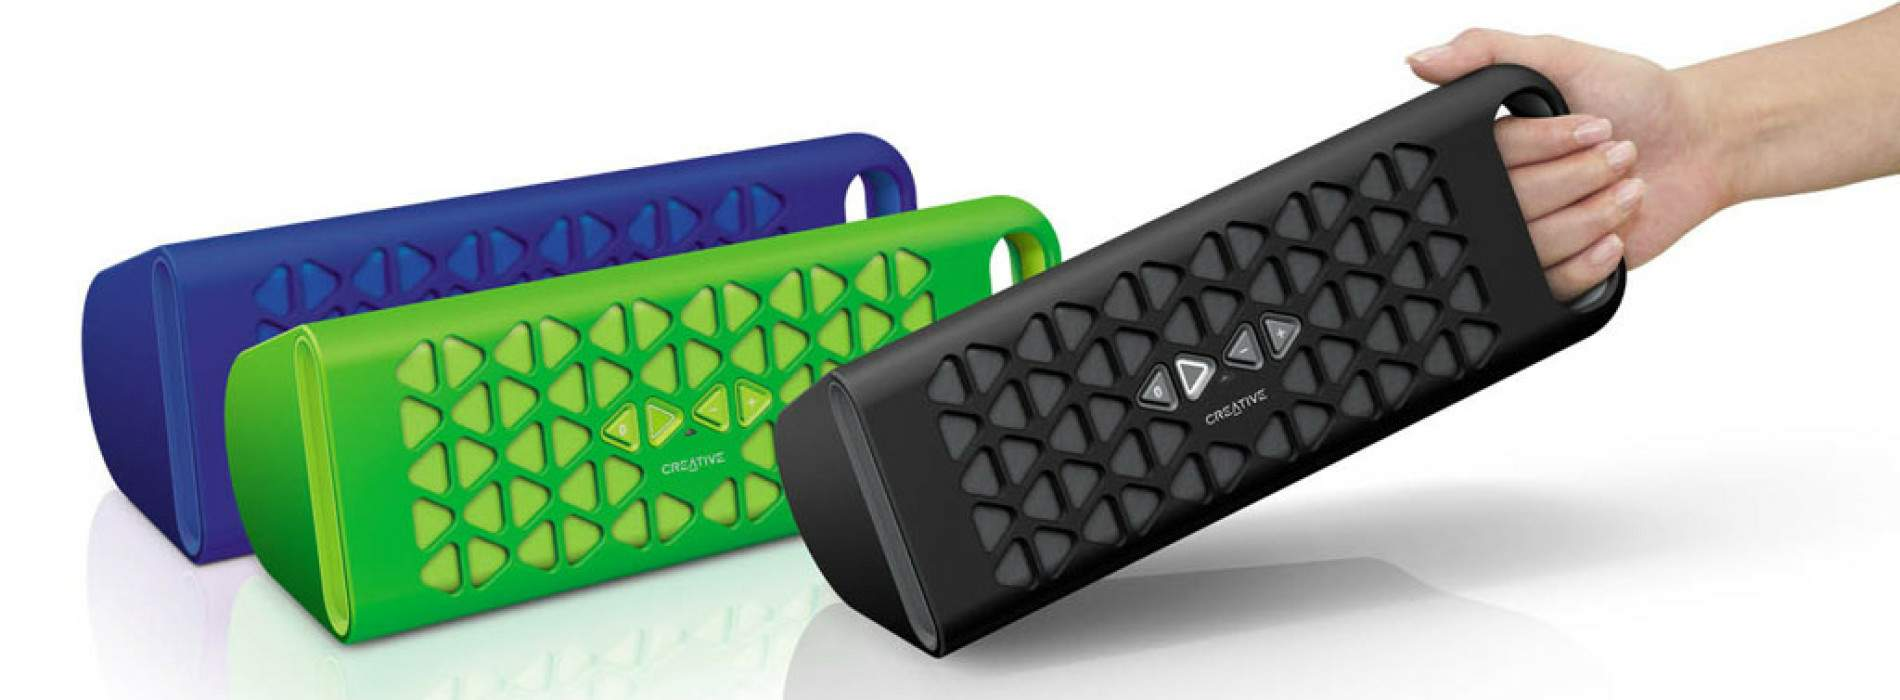 Creative Muvo 20 y Muvo 10: Altavoces bluetooth